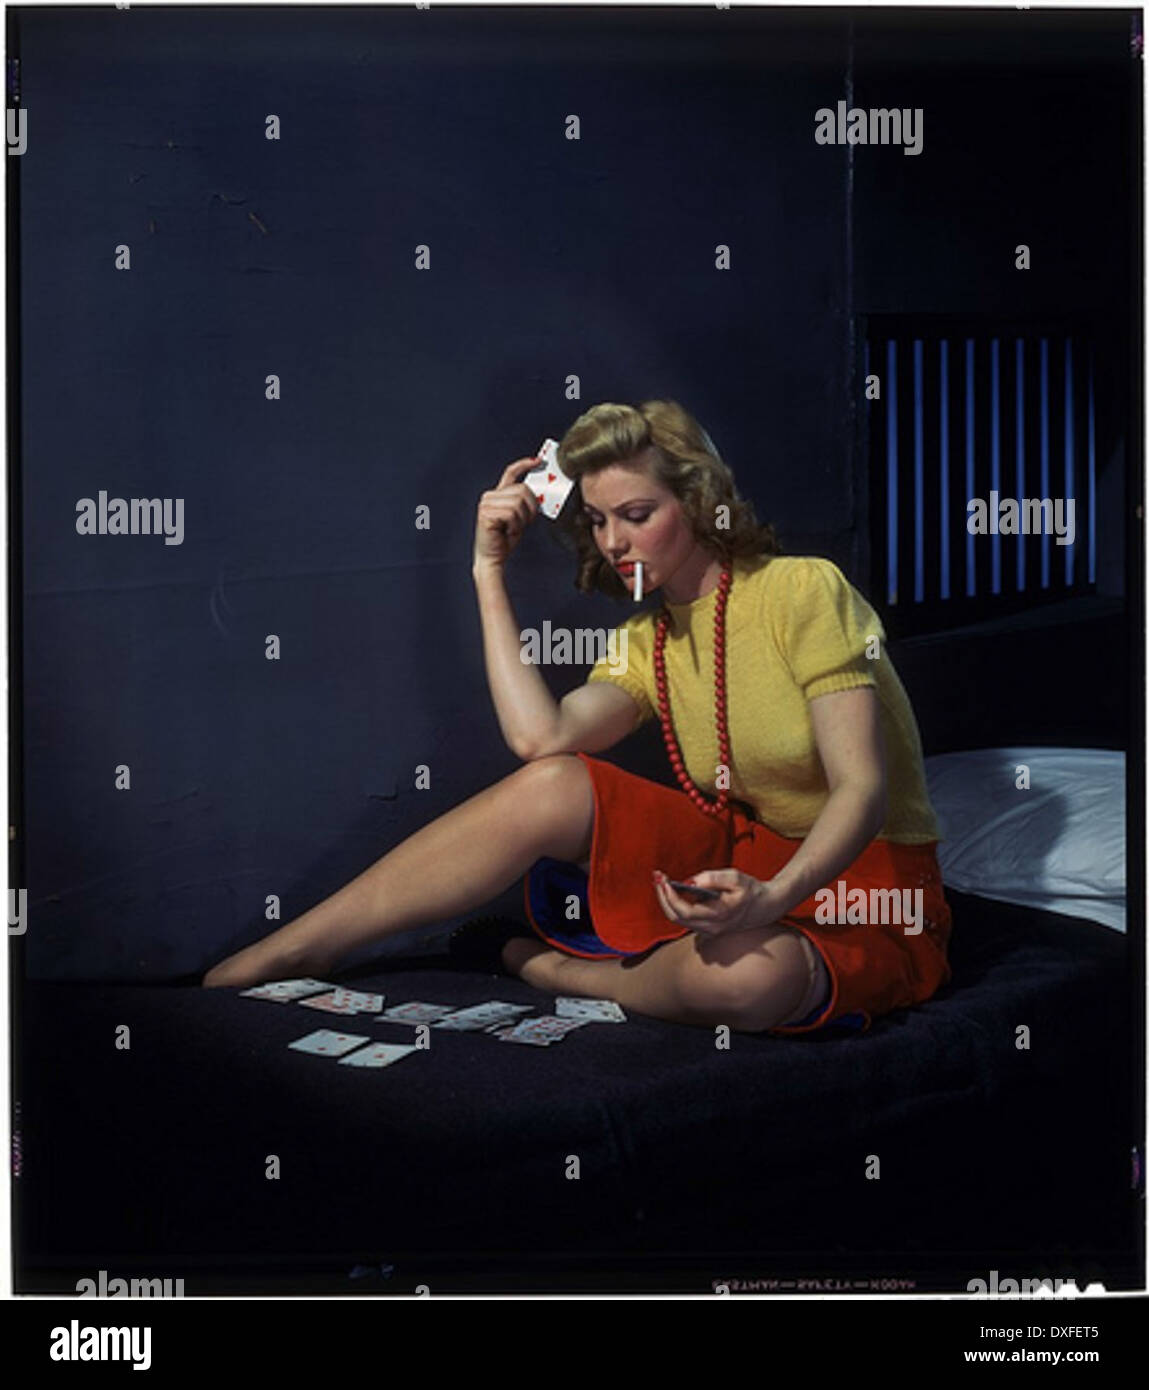 Woman in cell, playing solitaire - Stock Image